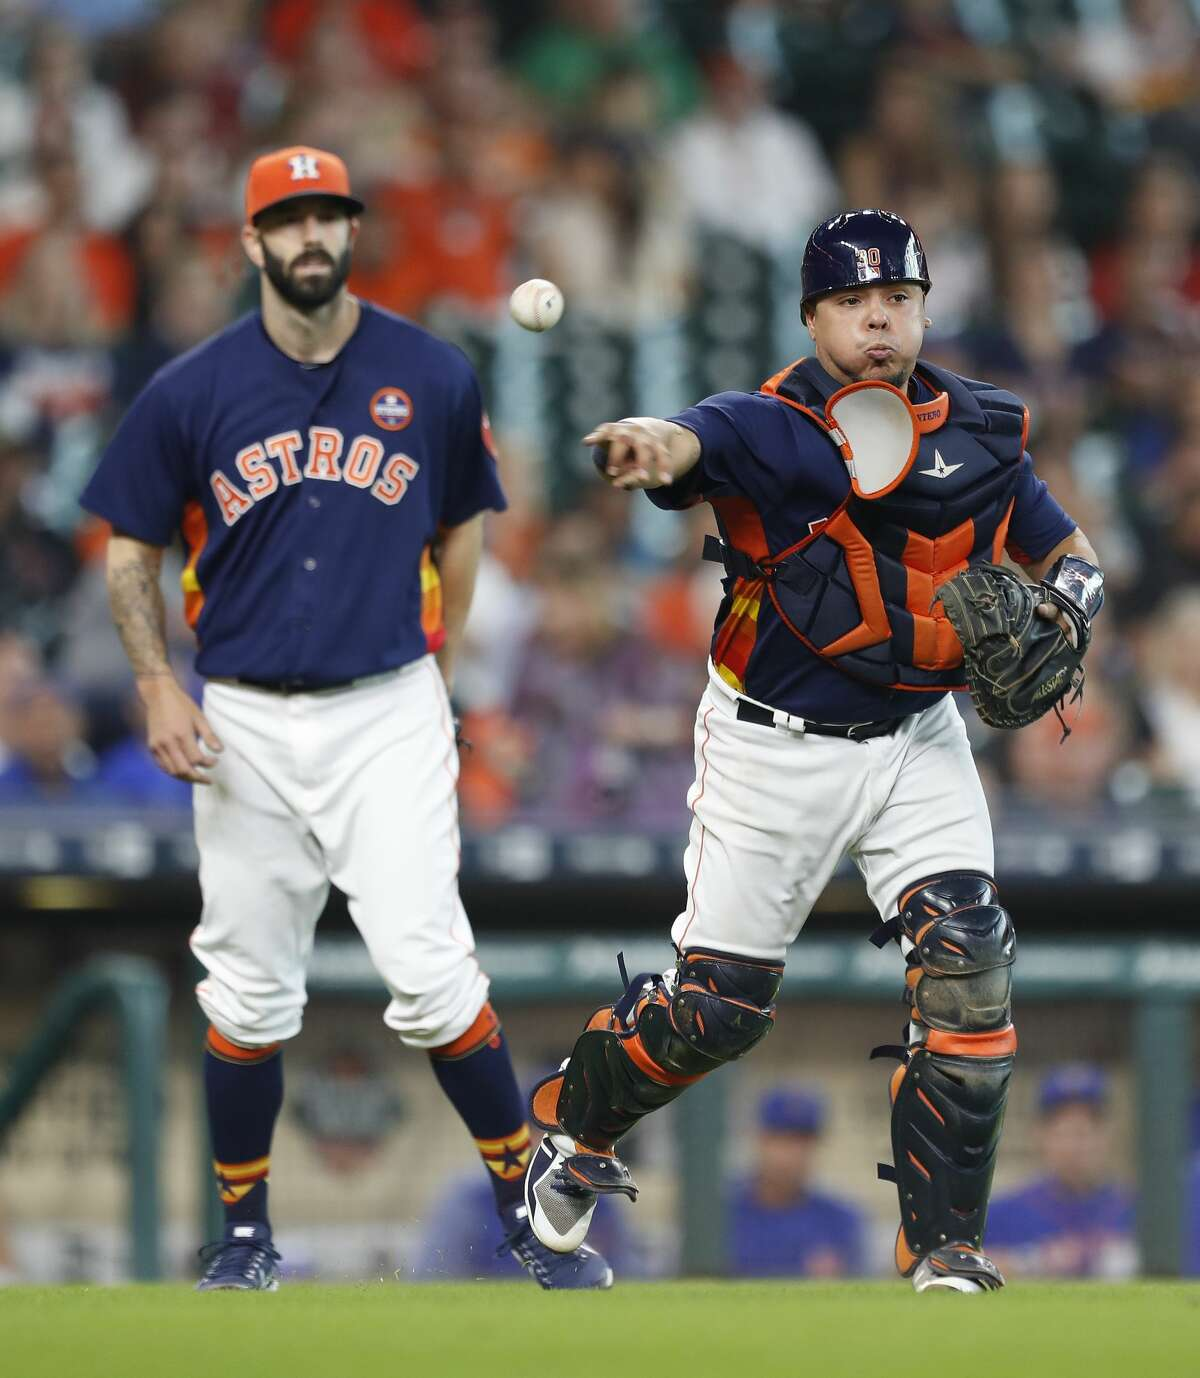 Houston Astros catcher Juan Centeno (30) makes the throw to first base as New York Mets Asdrubal Cabrera was out on a sacrifice bunt during the fifth inning of an MLB baseball game at Minute Maid Park, Sunday, Sept. 3, 2017, in Houston. ( Karen Warren / Houston Chronicle )